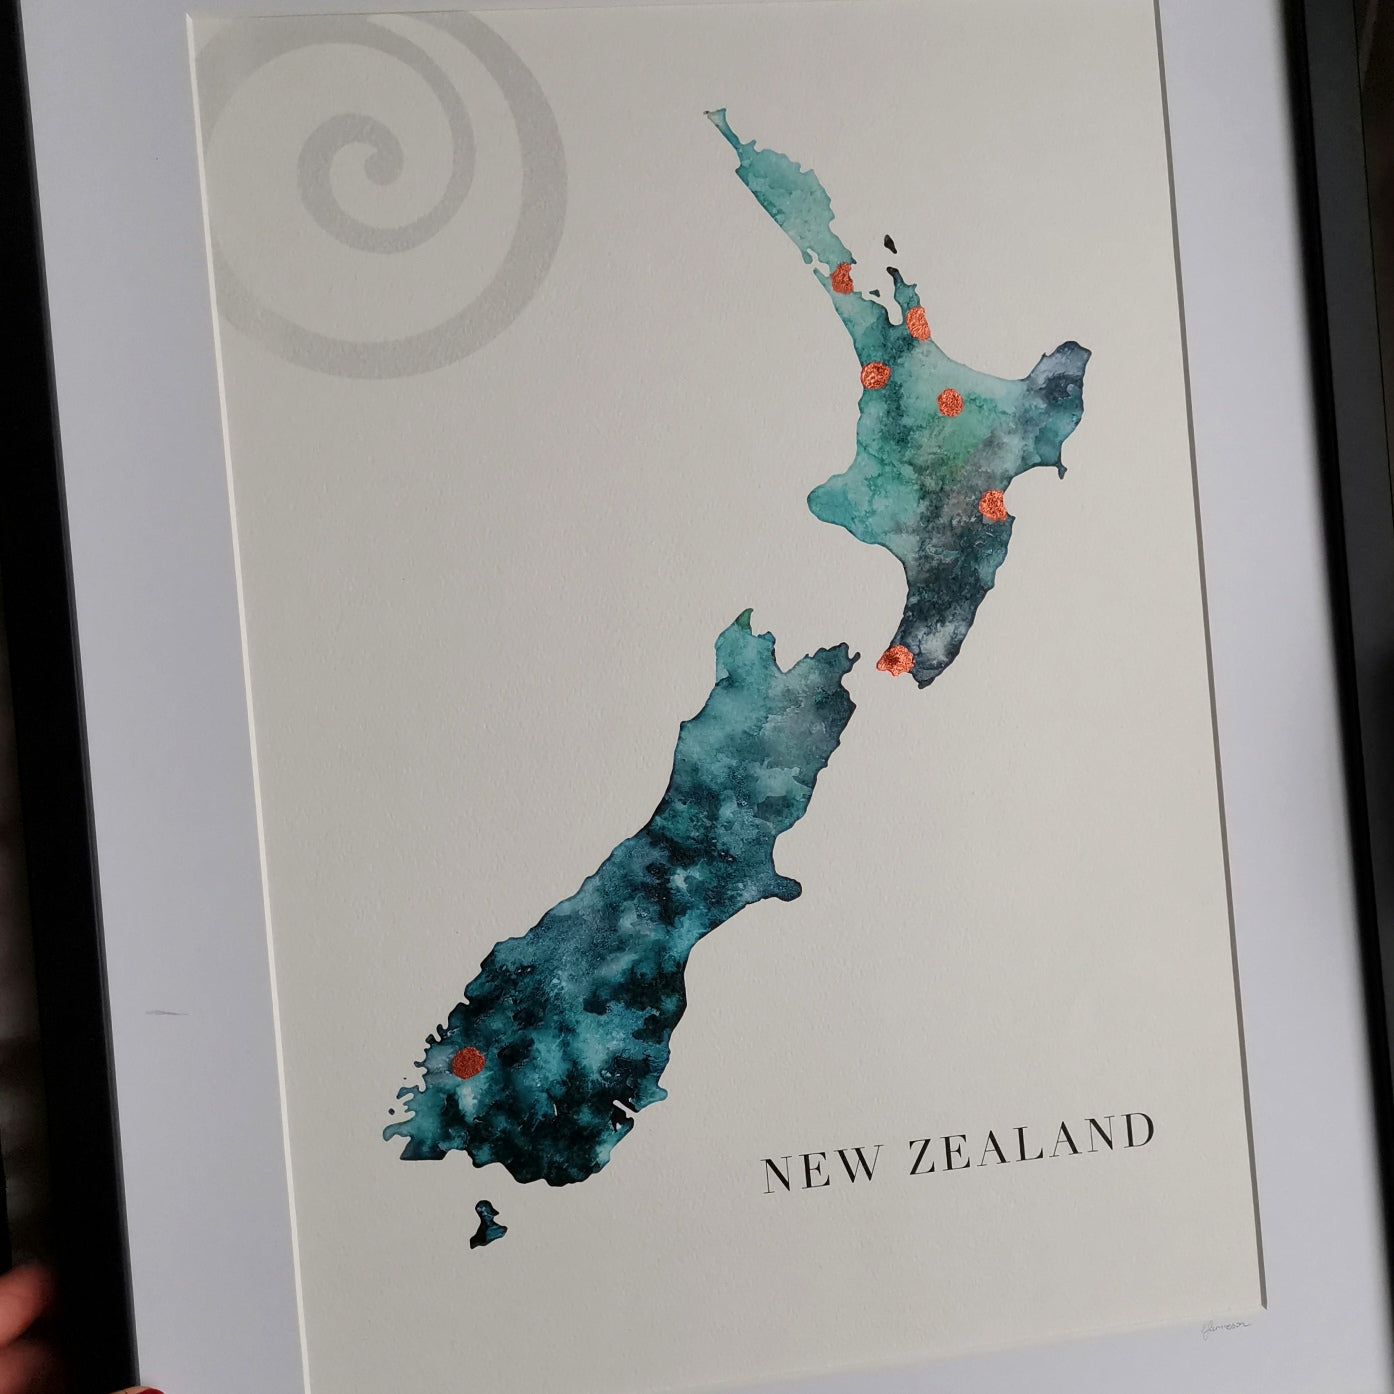 Kai Smokehouse have close ties with New Zealand and wanted their logo on the print.